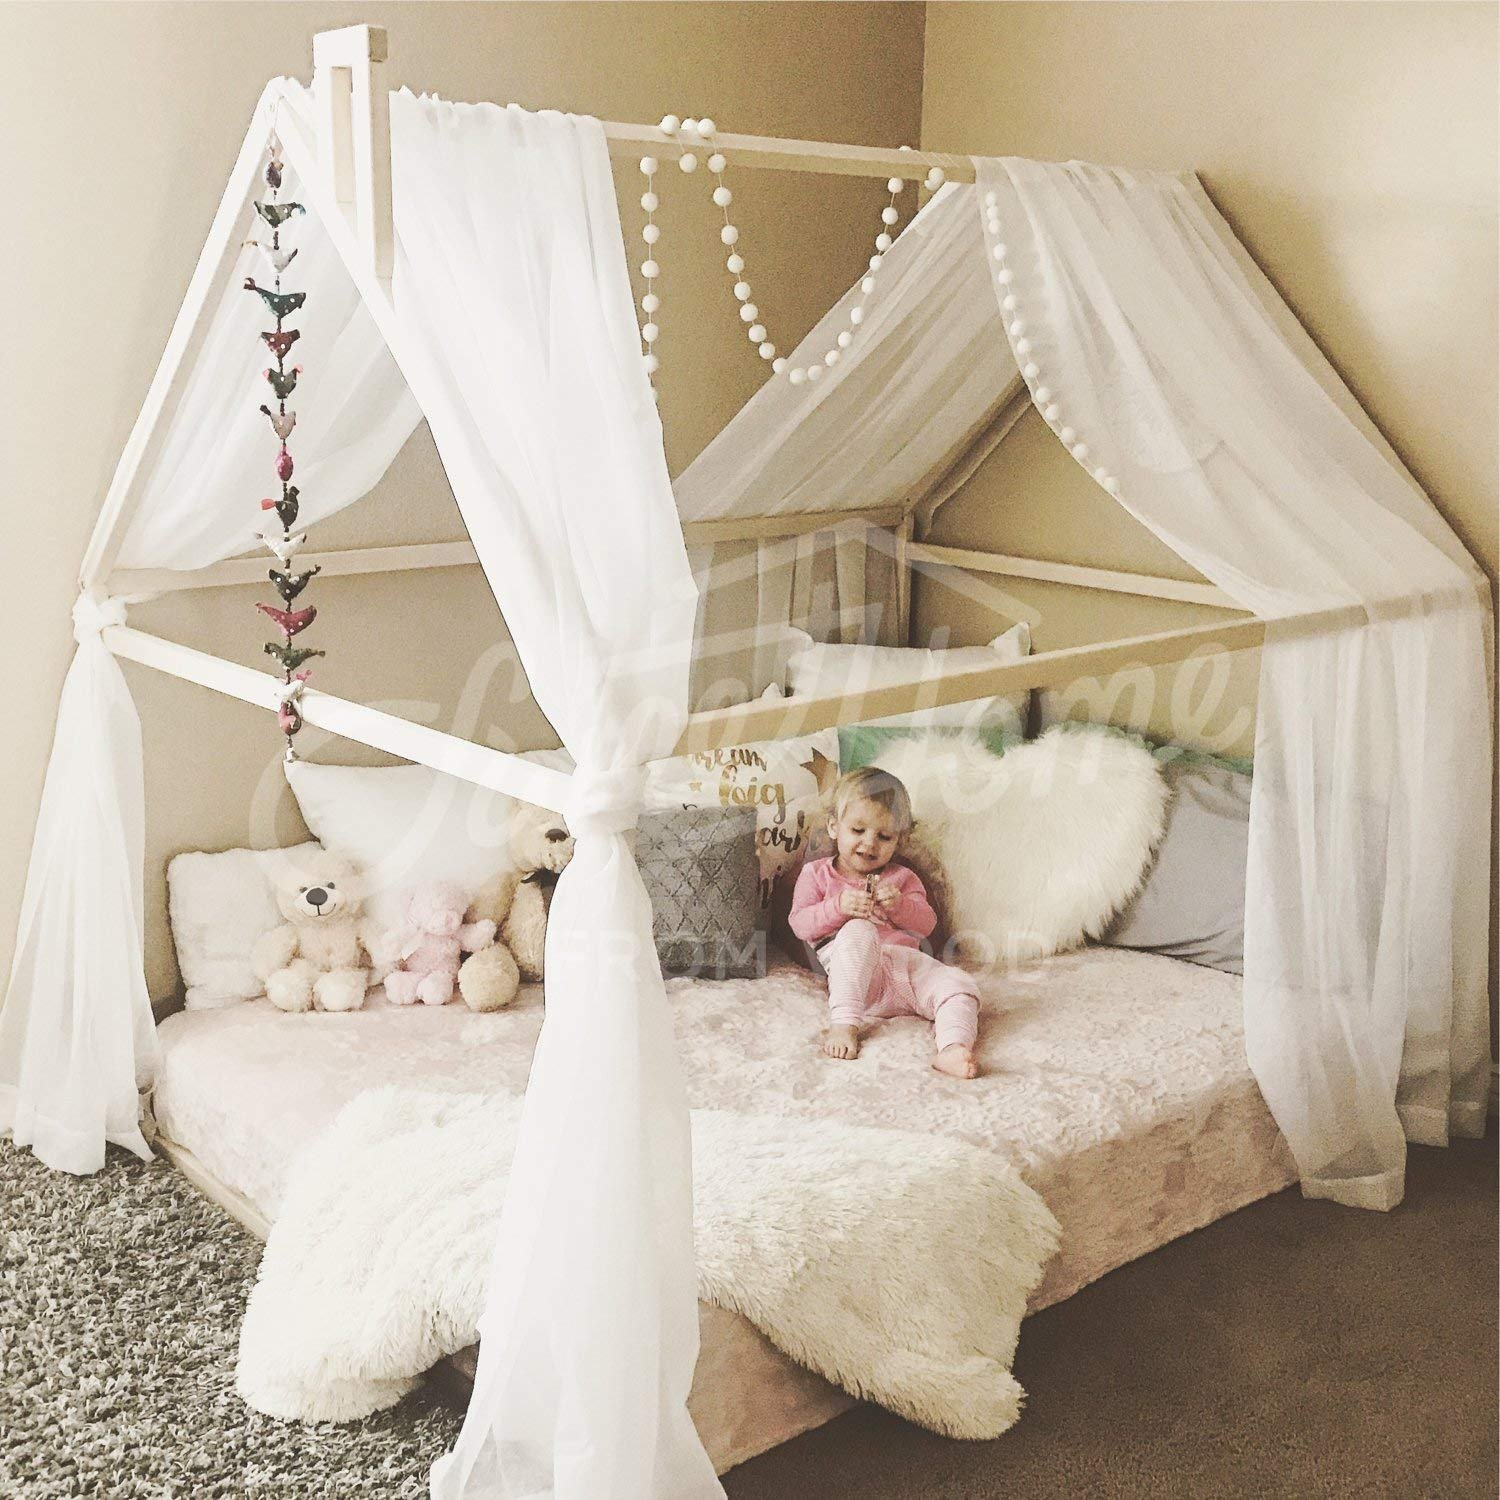 Queen size Toddler bed, house bed, tent bed, wooden house, wood house, wood nursery, teepee bed, wood house bed, wood bed frame, kids teepee & SLATS